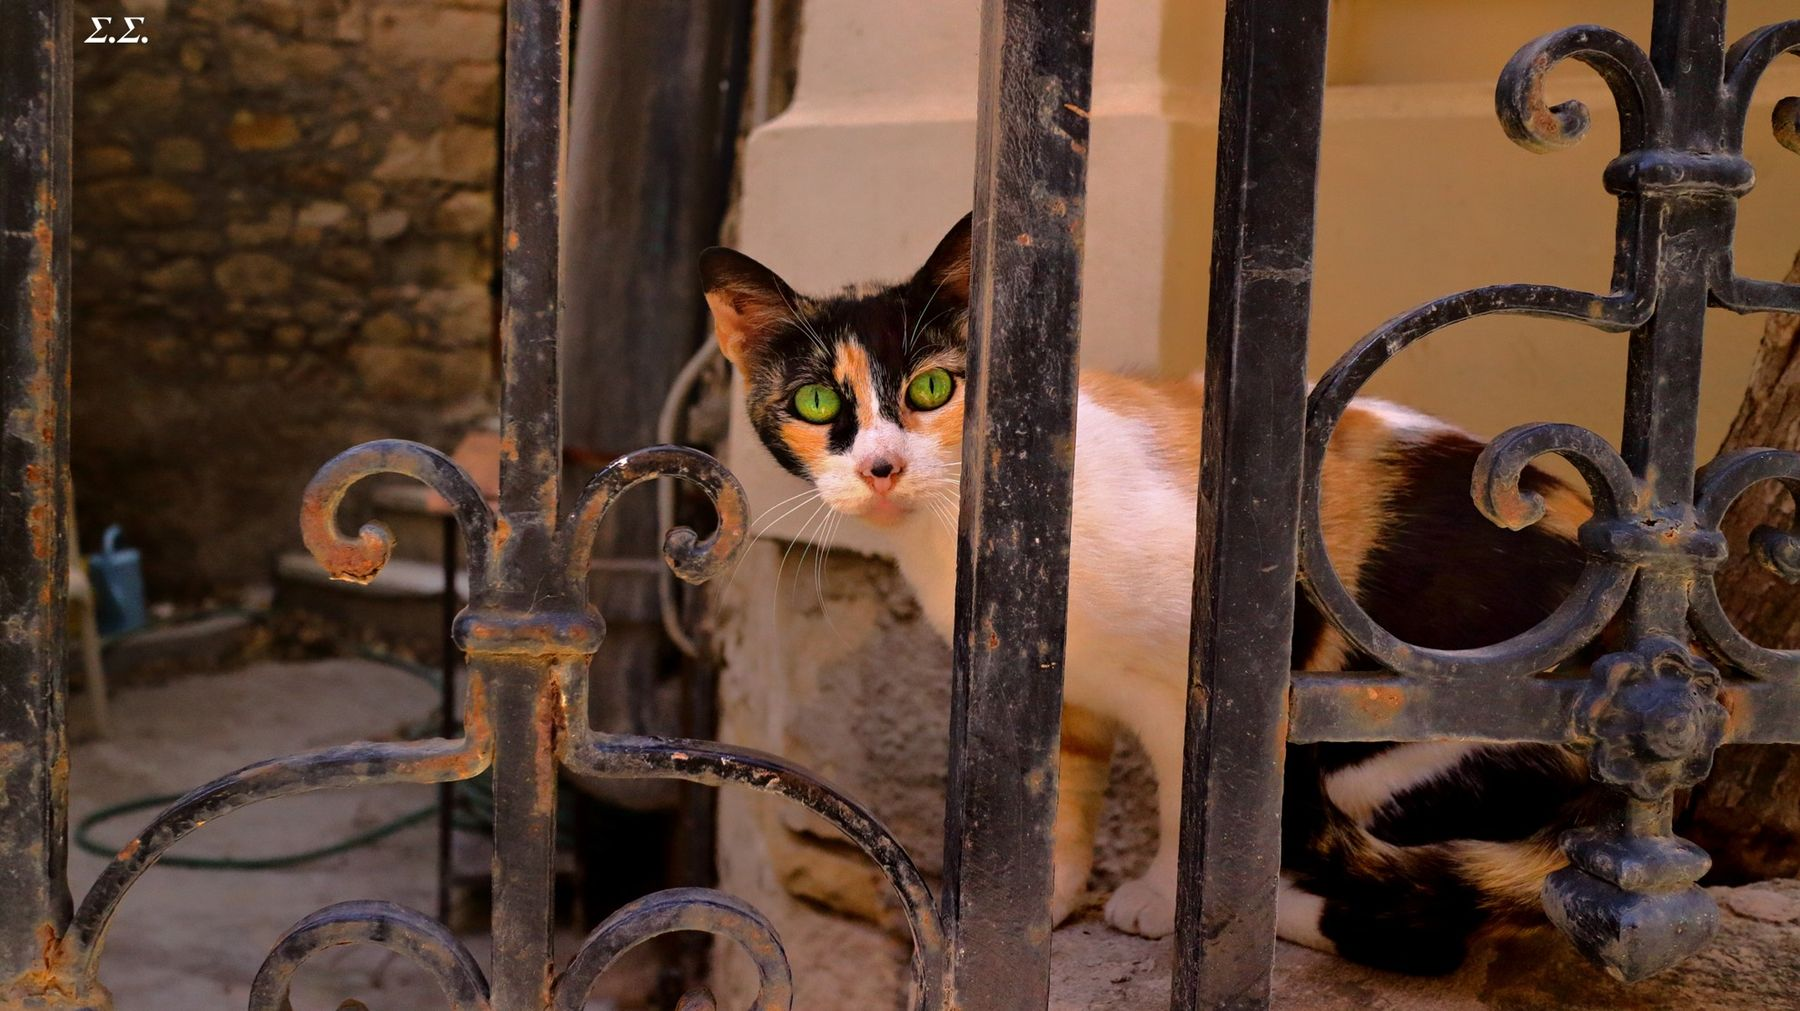 CAT BEHIND THE BARS